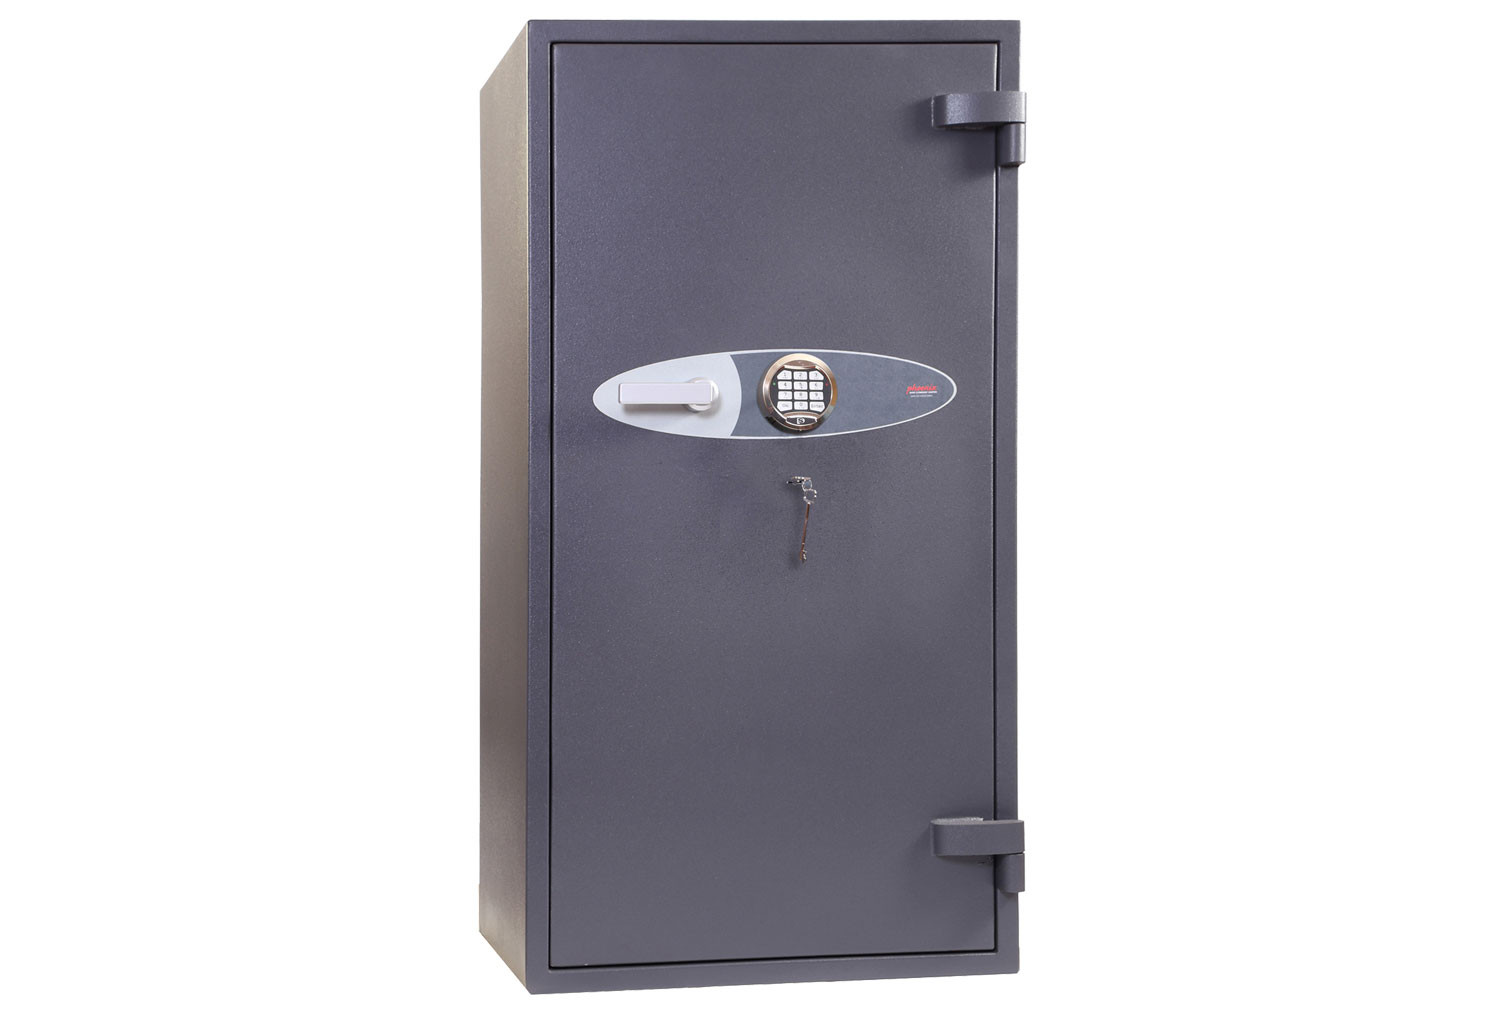 Phoenix Planet HS6074E High Security Safe With Electronic Lock (190ltrs)